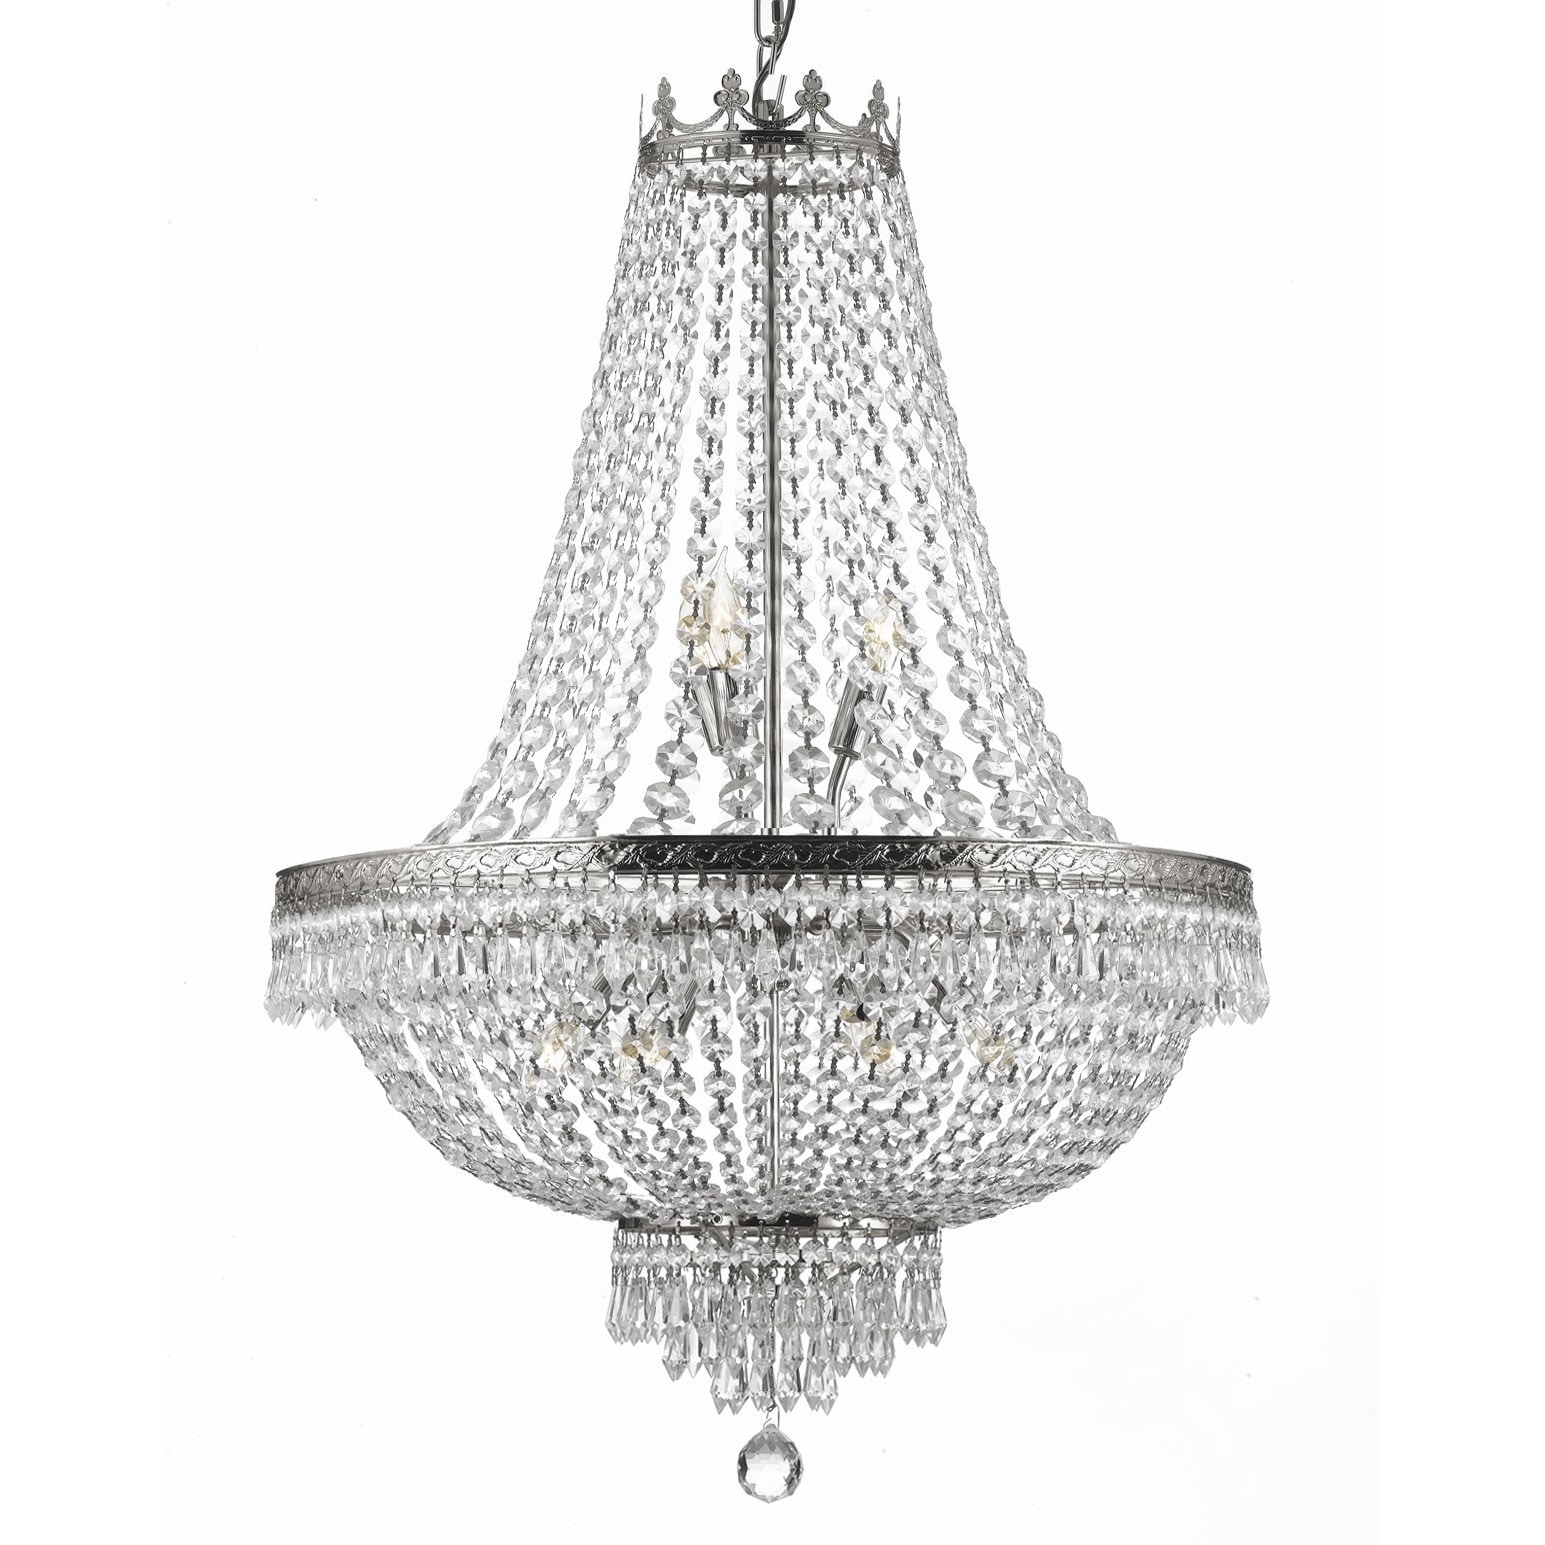 Gallery 9 light silver empire crystal chandelier free shipping gallery 9 light silver empire crystal chandelier free shipping today overstock 16018080 arubaitofo Choice Image